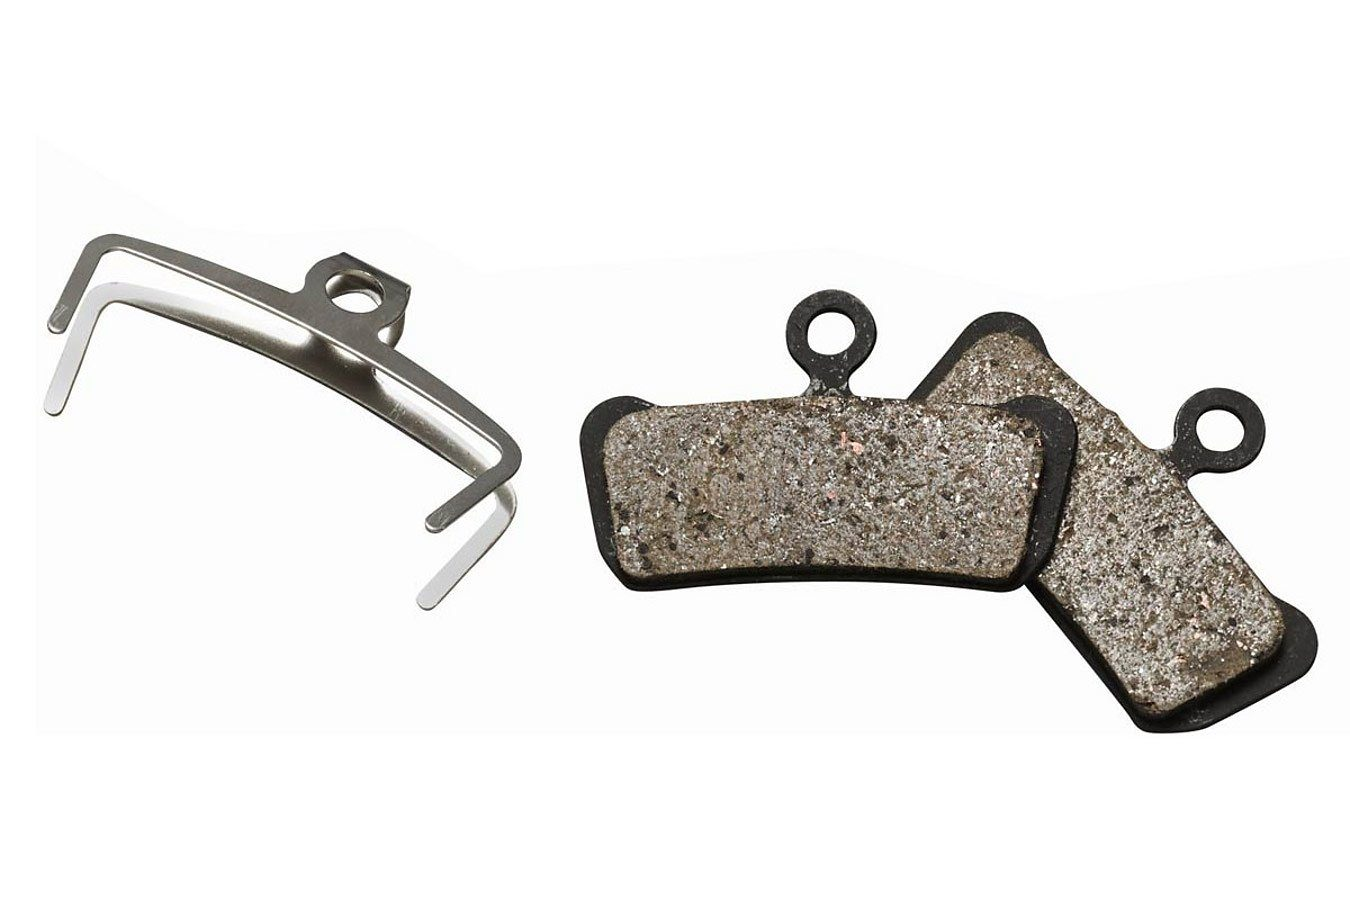 Reverse Bremsbelag »AirCon replacement Brakepad for Avid Trail + Guide«